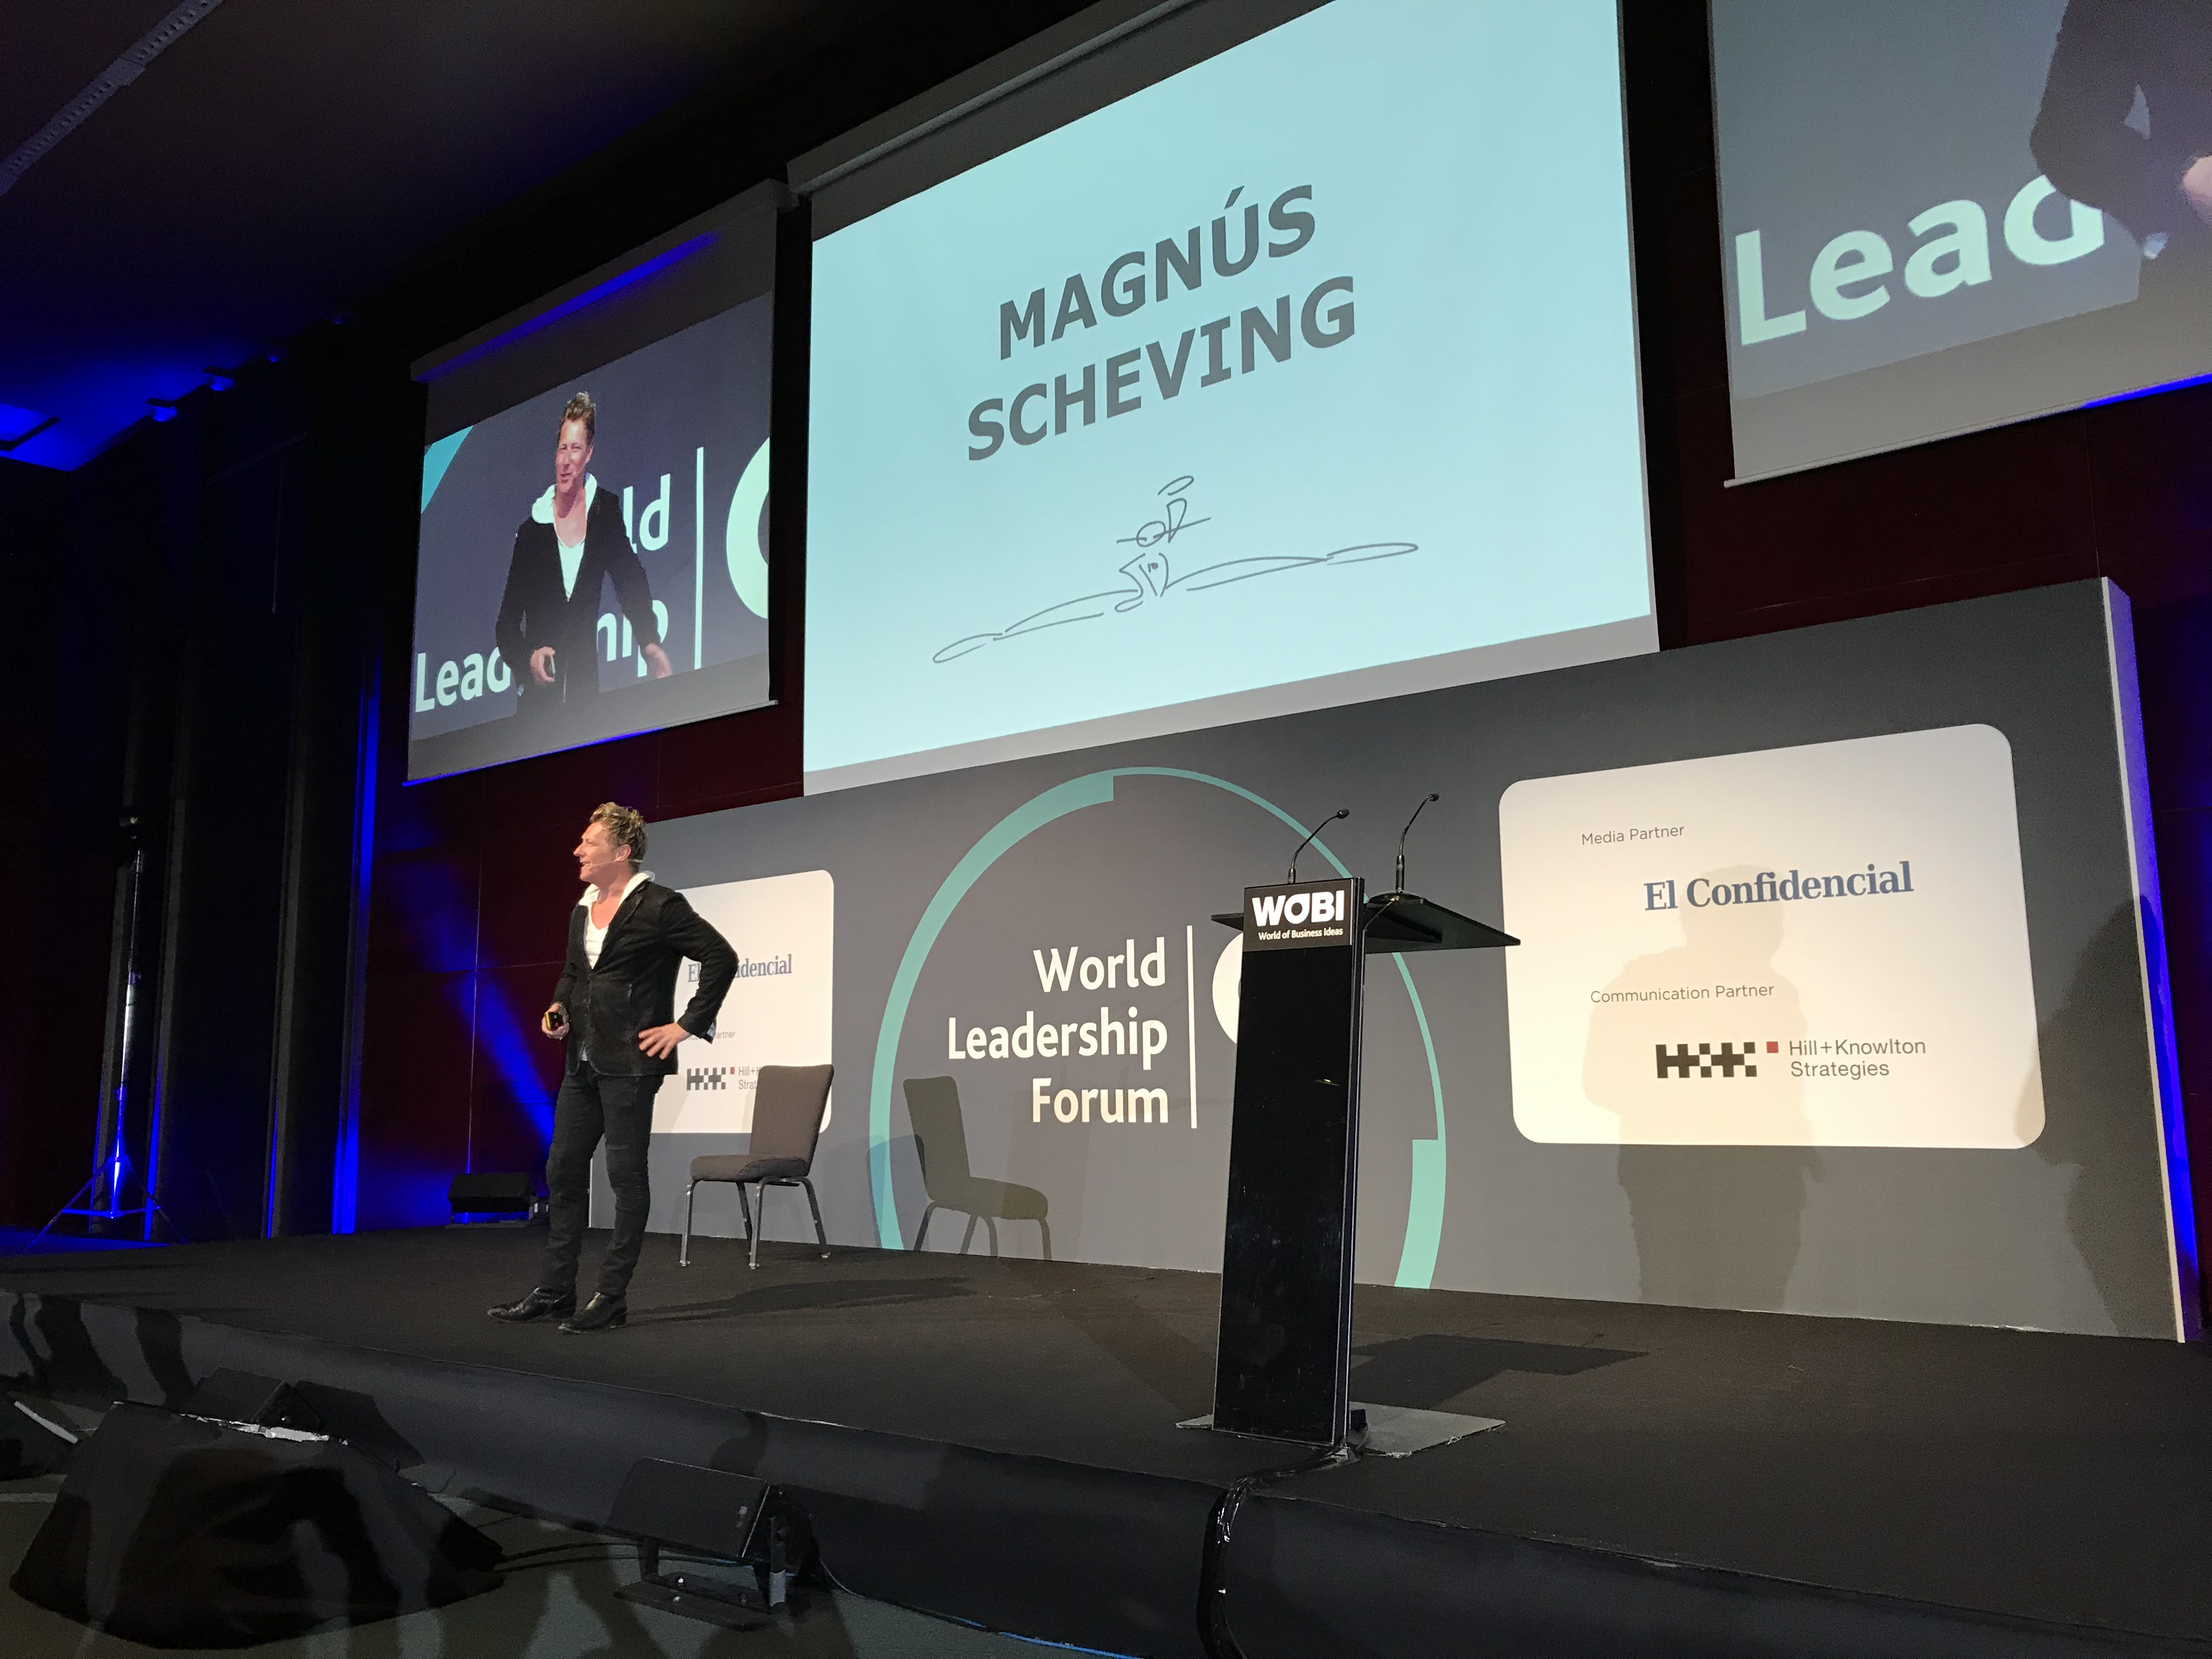 Magnus Scheving speaking at WOBI Barcelona